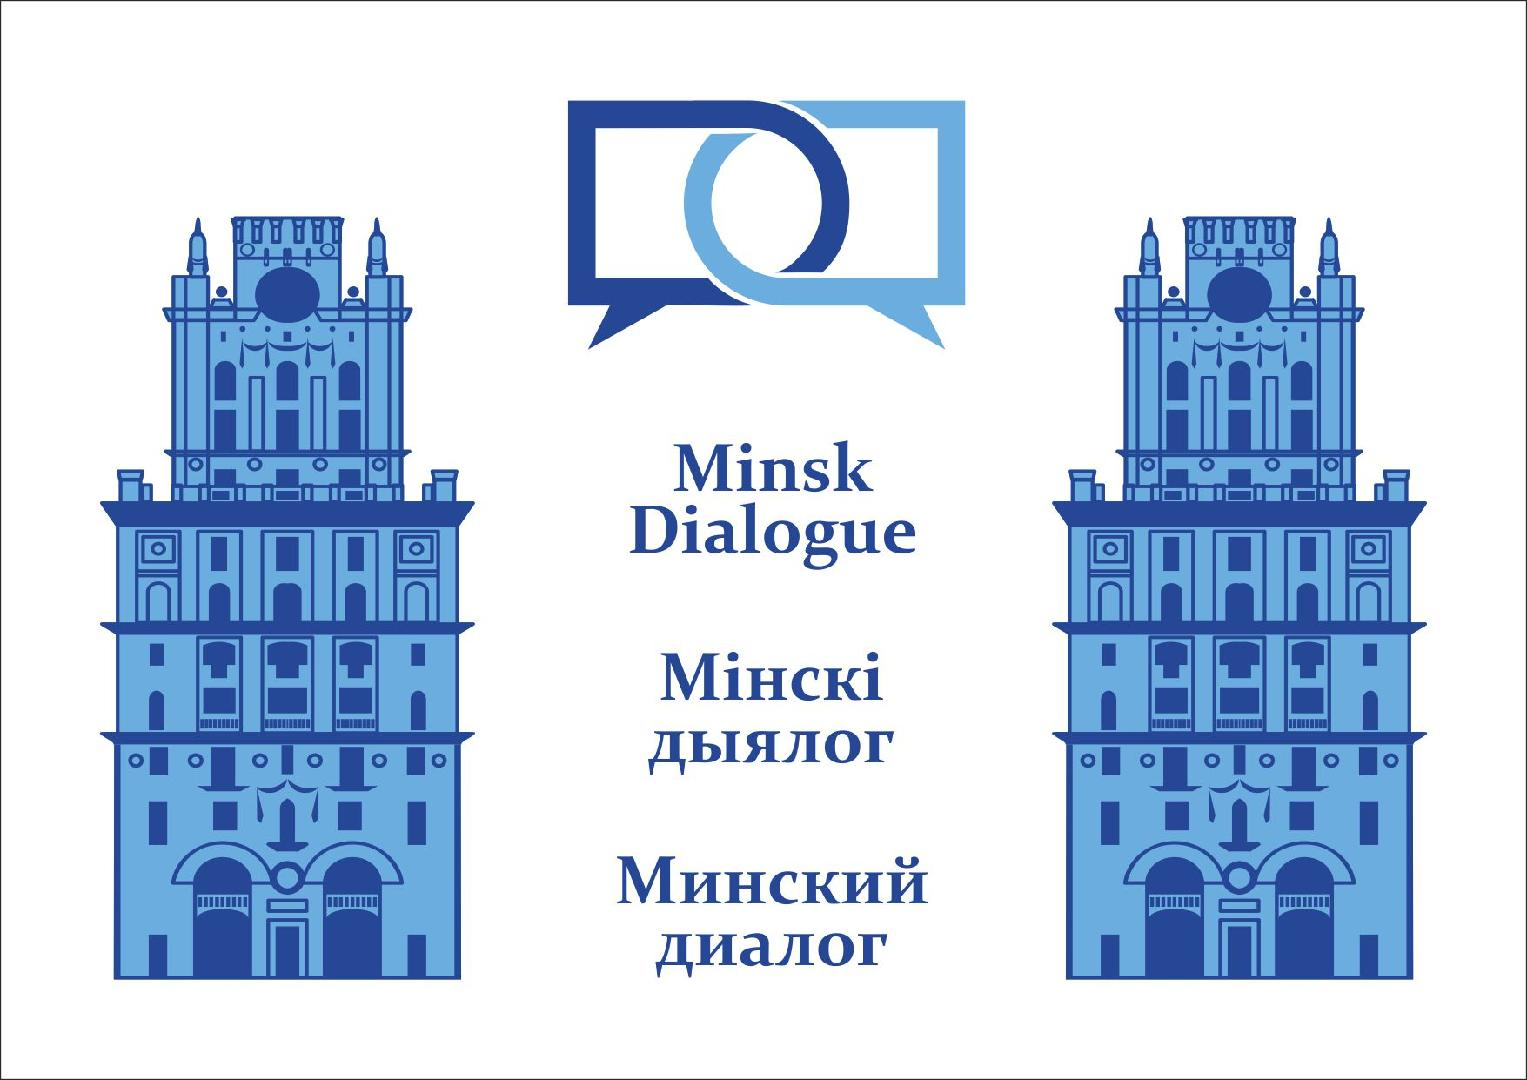 Minsk Dialogue Initiative